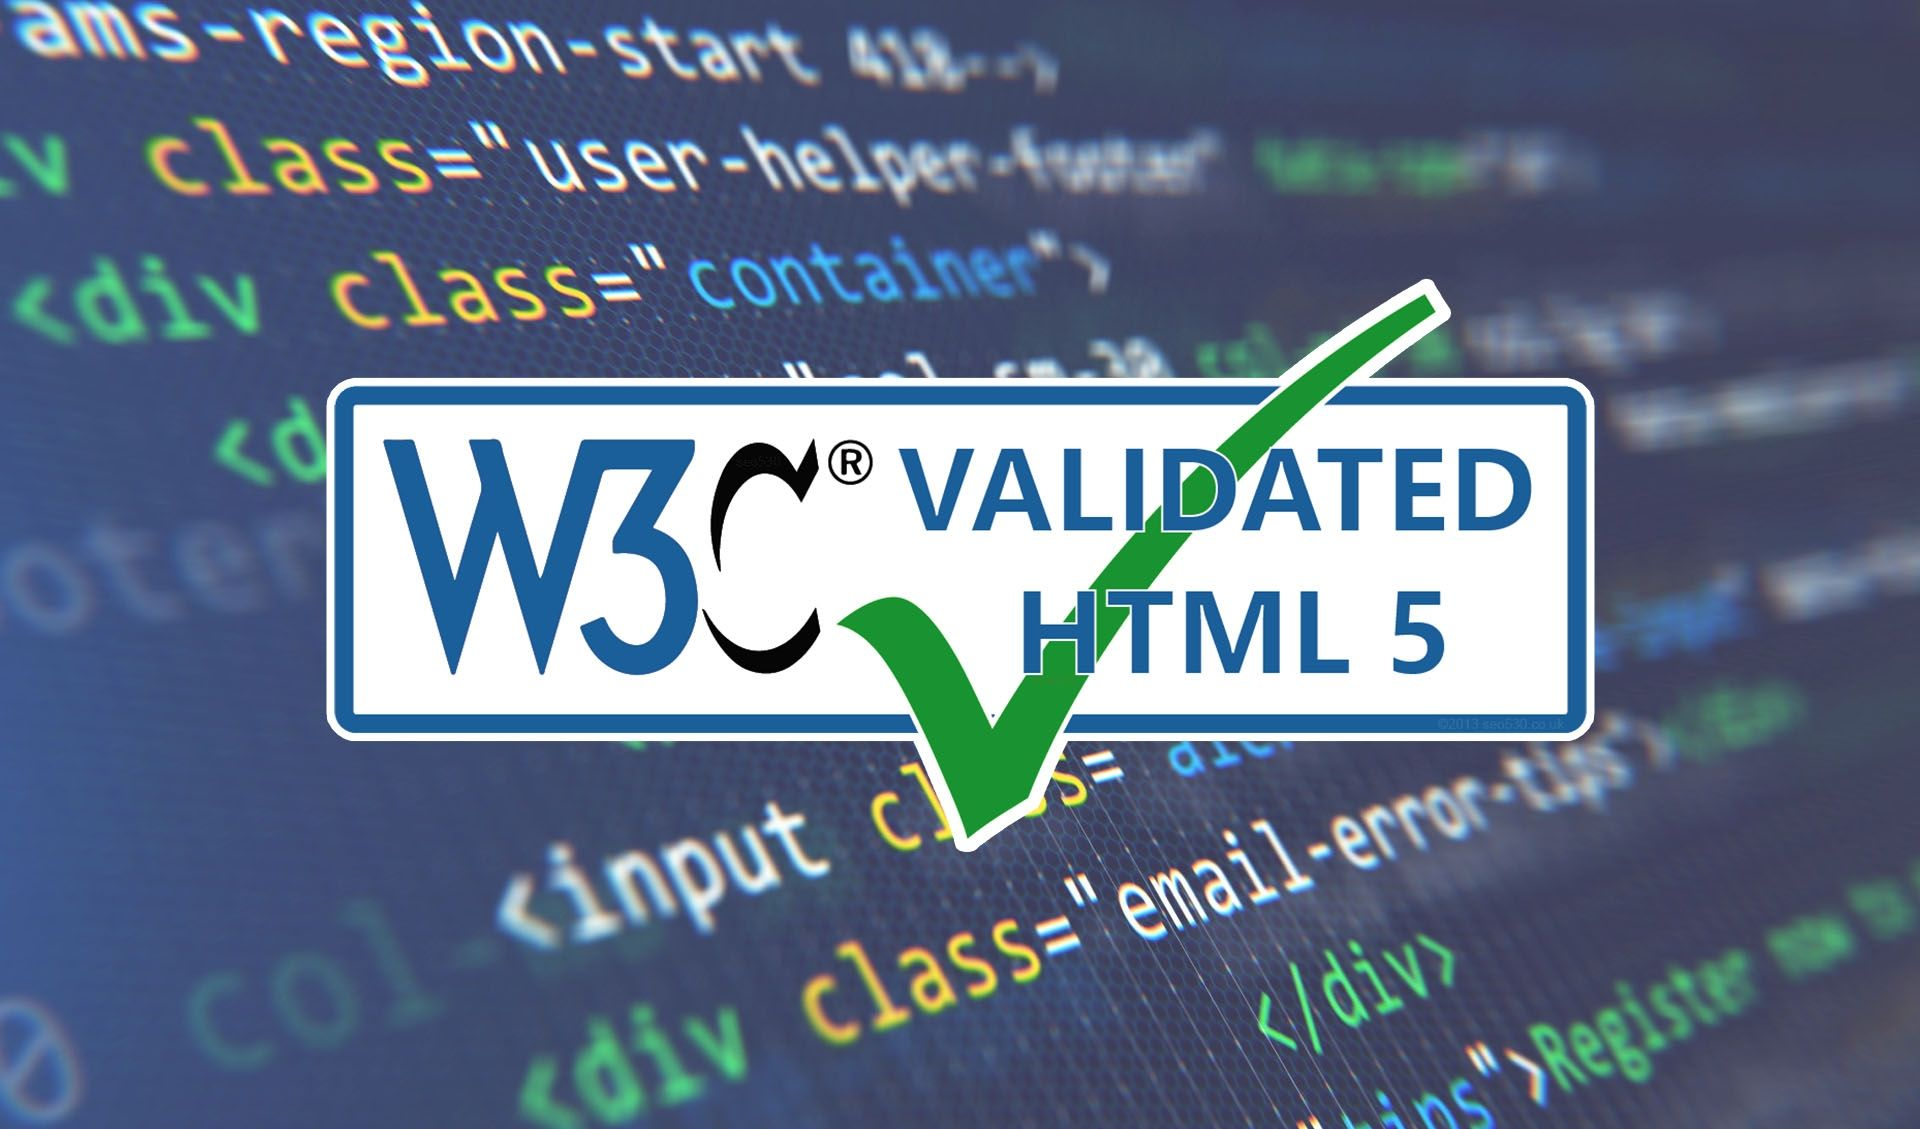 Cara baiki W3C validator the type attribute is unnecessary for javaScript resources pada Joomla